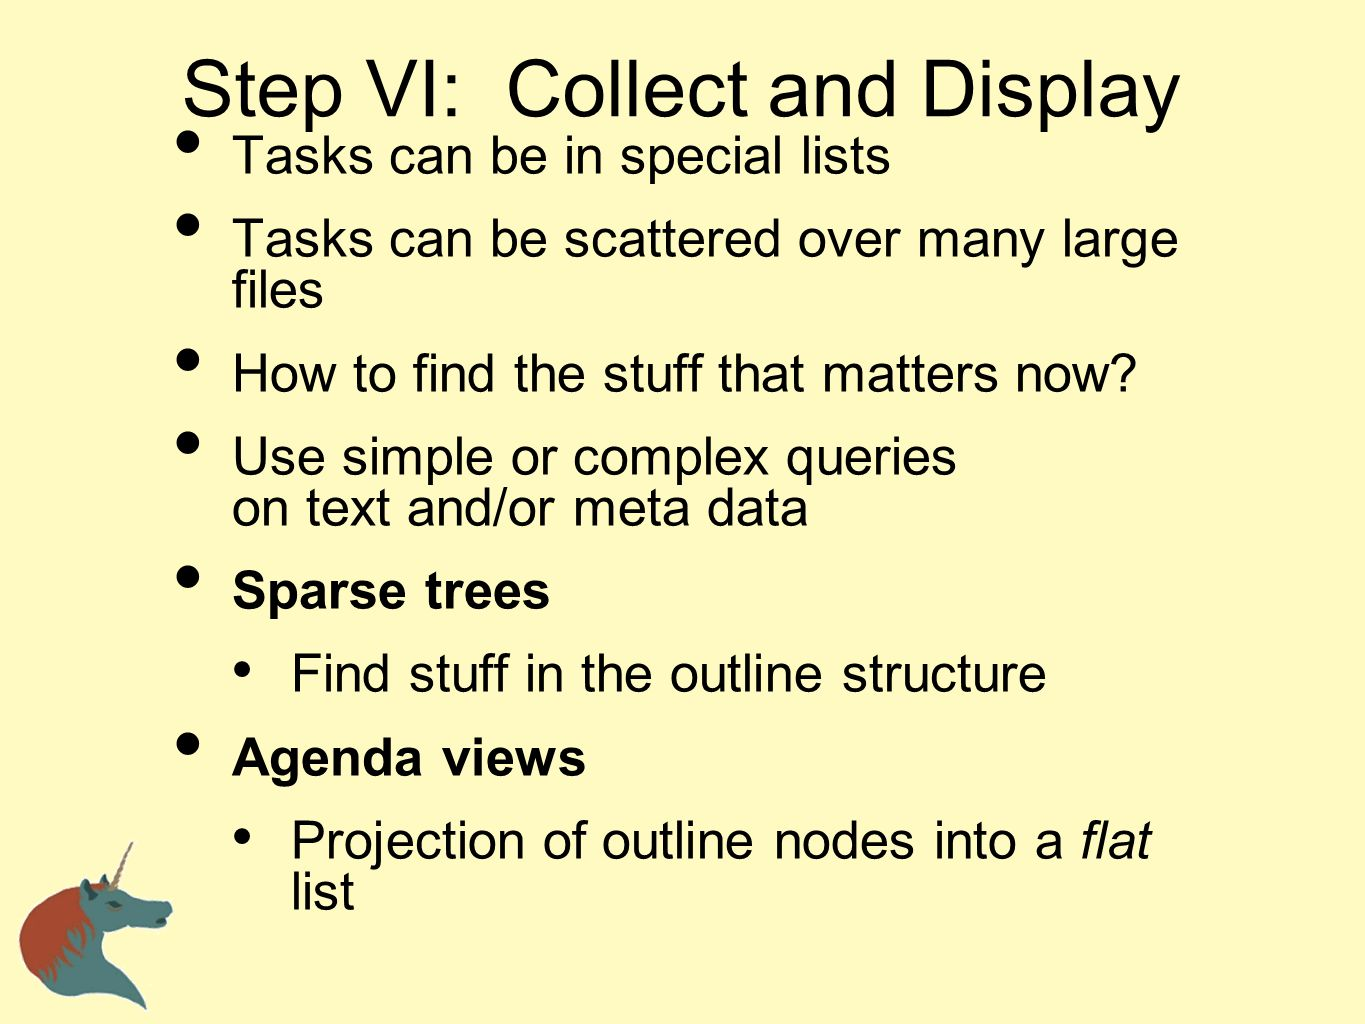 Step VI: Collect and Display